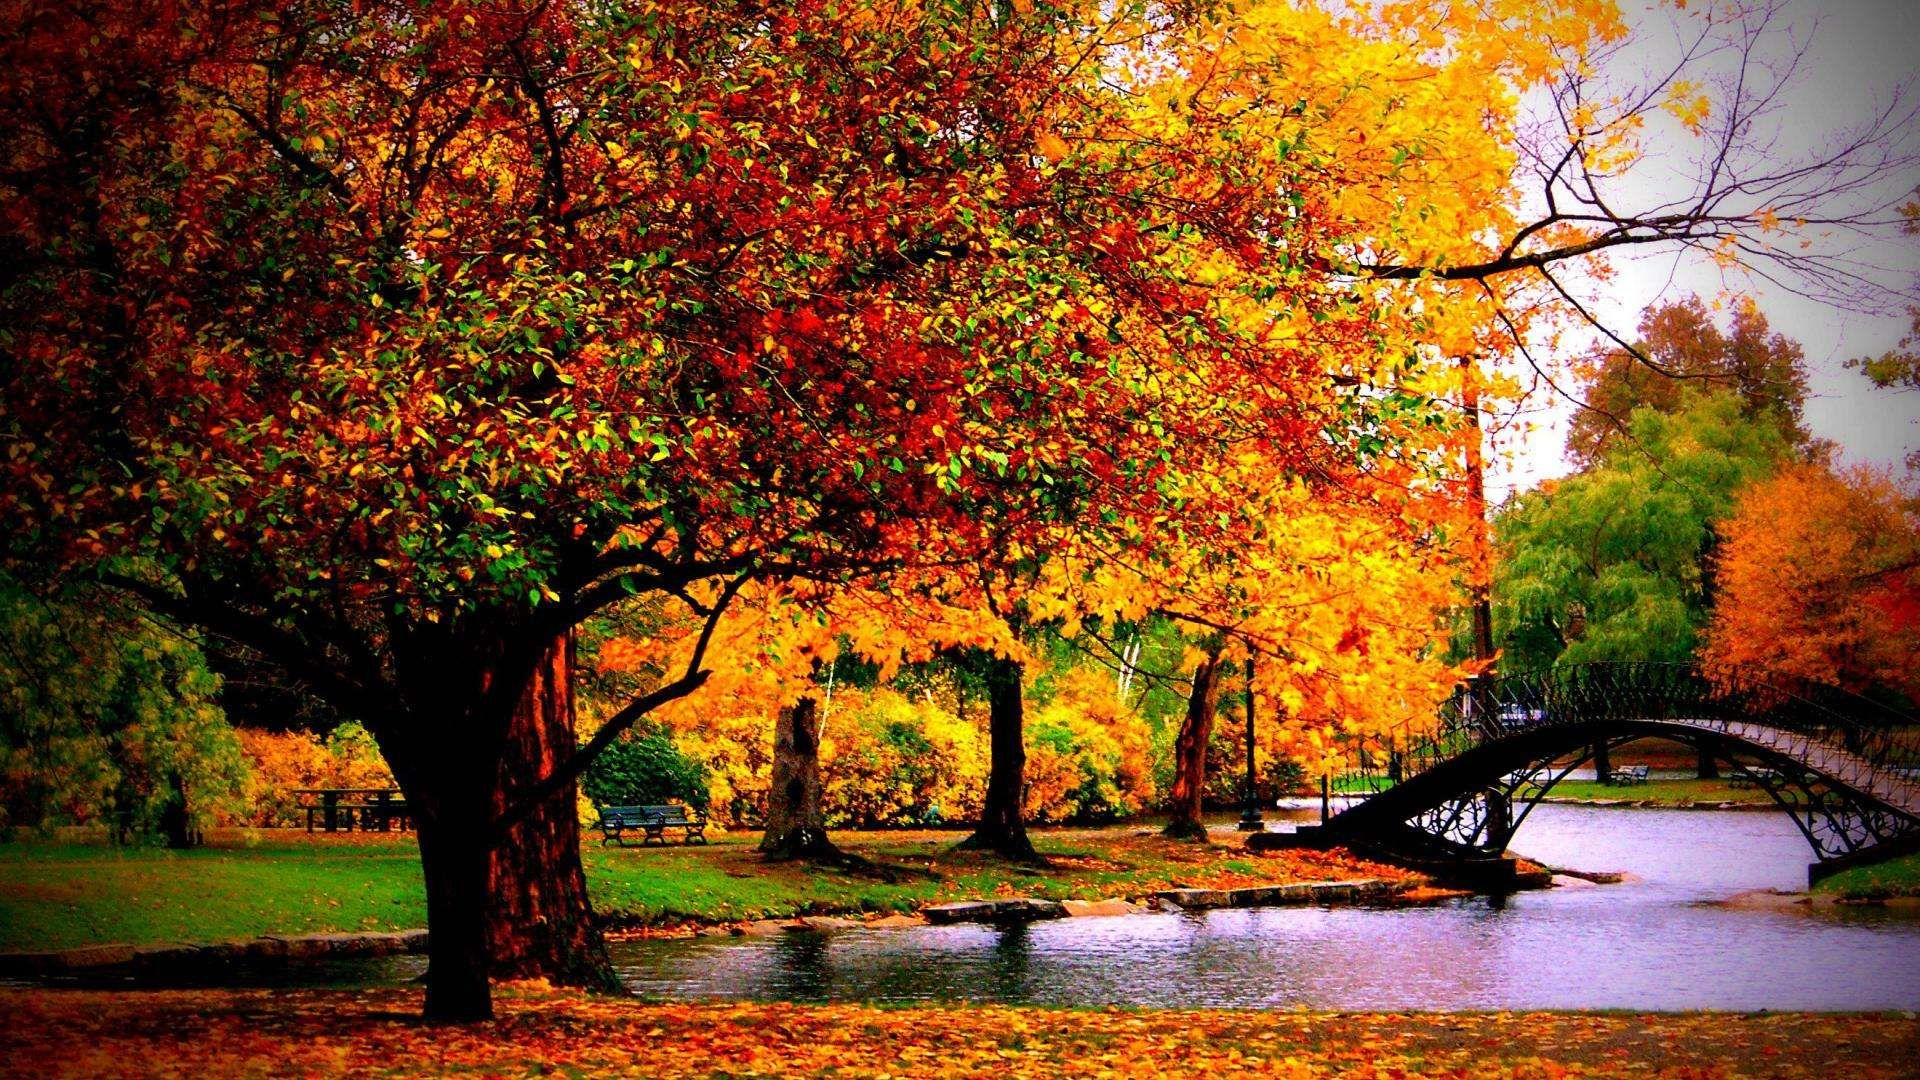 Fall Desktop wallpaper – Create Your Computers Ambiance